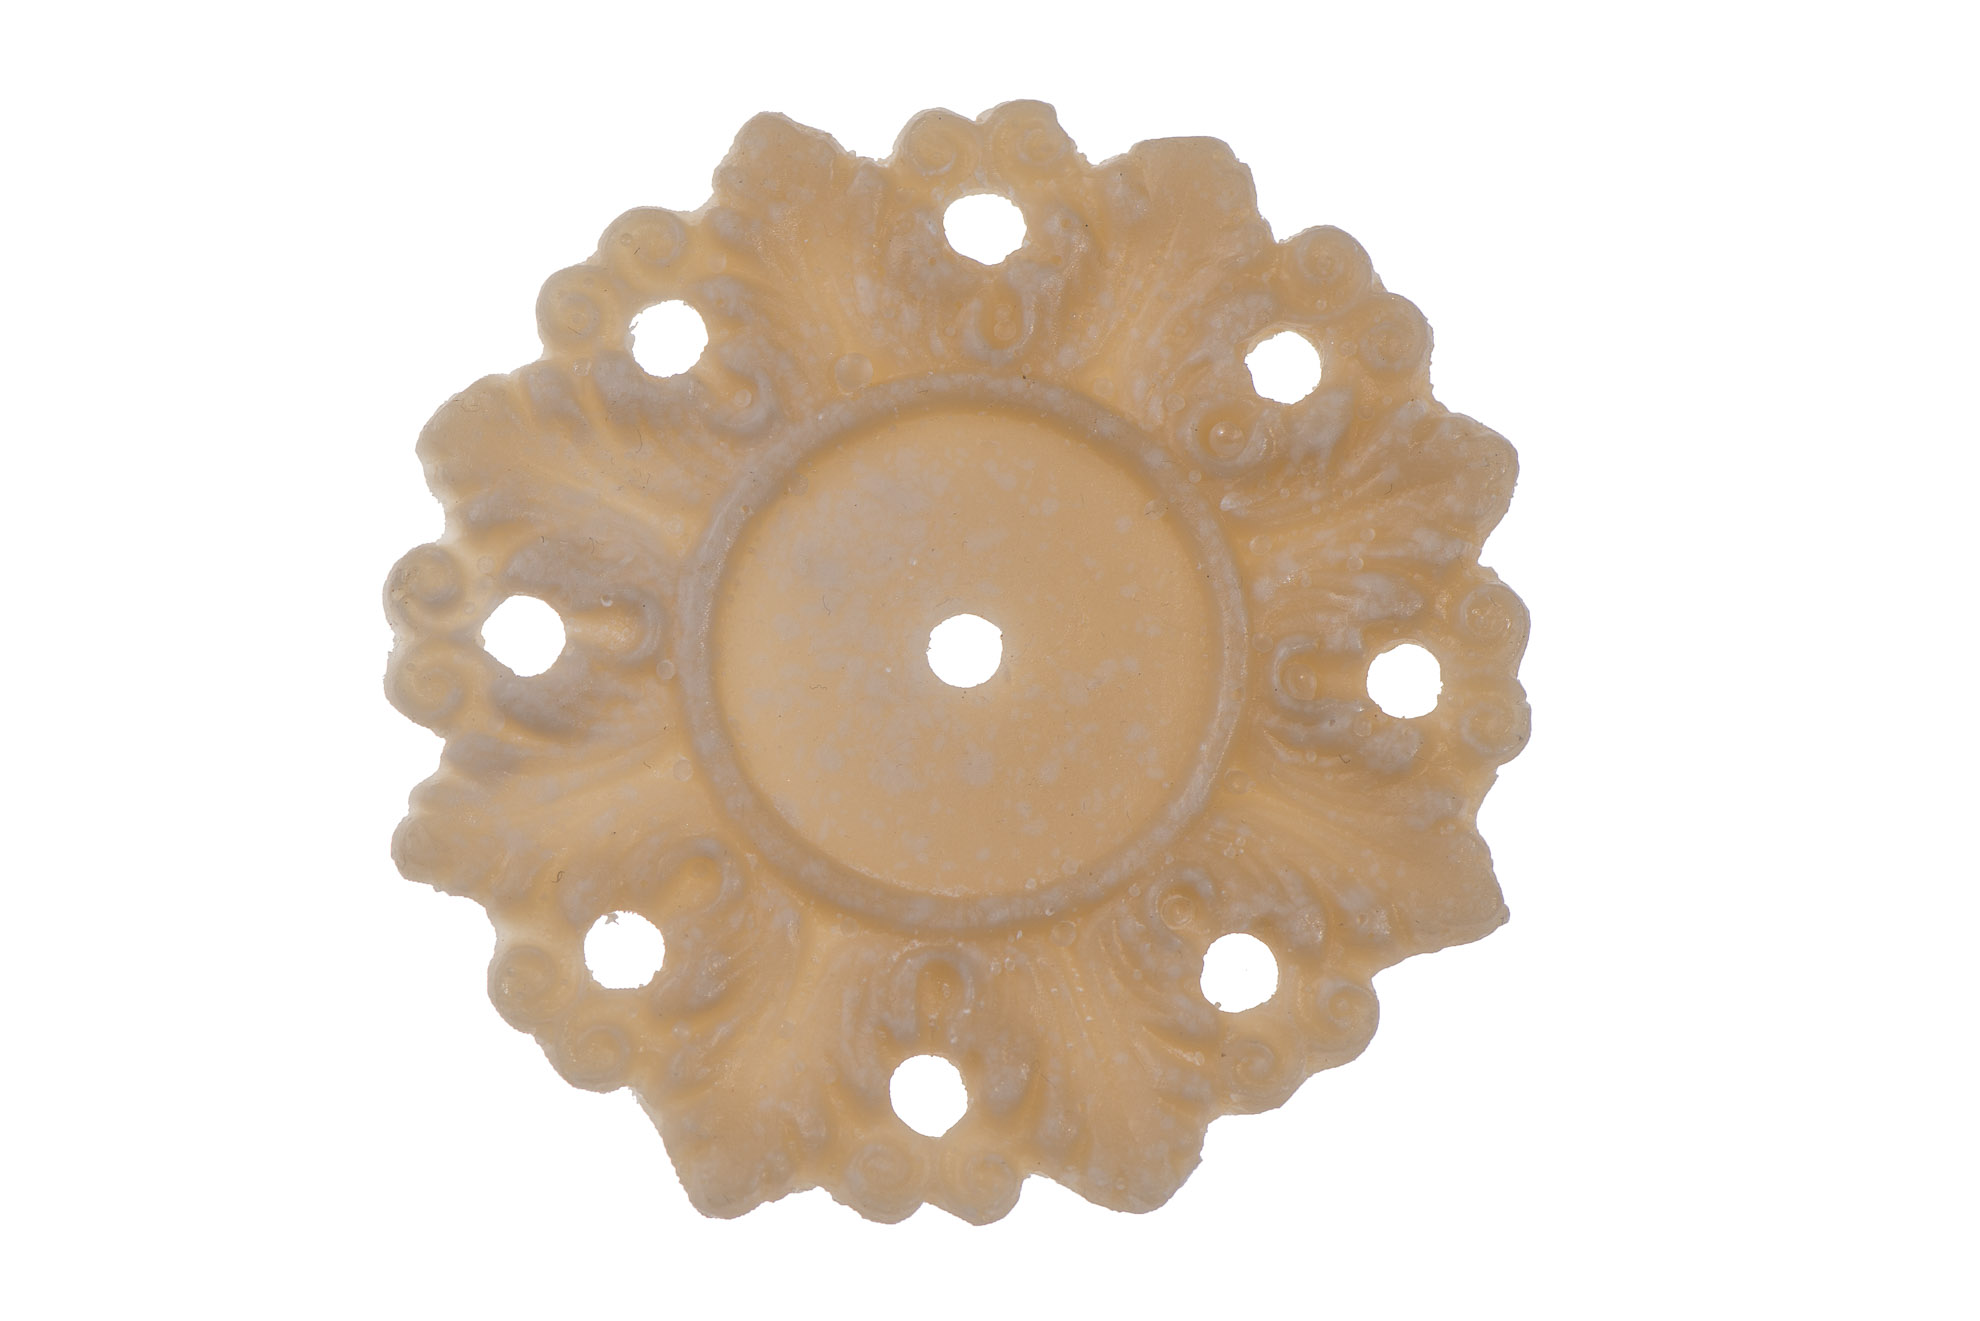 Shabby french provincial furniture knob architectural applique